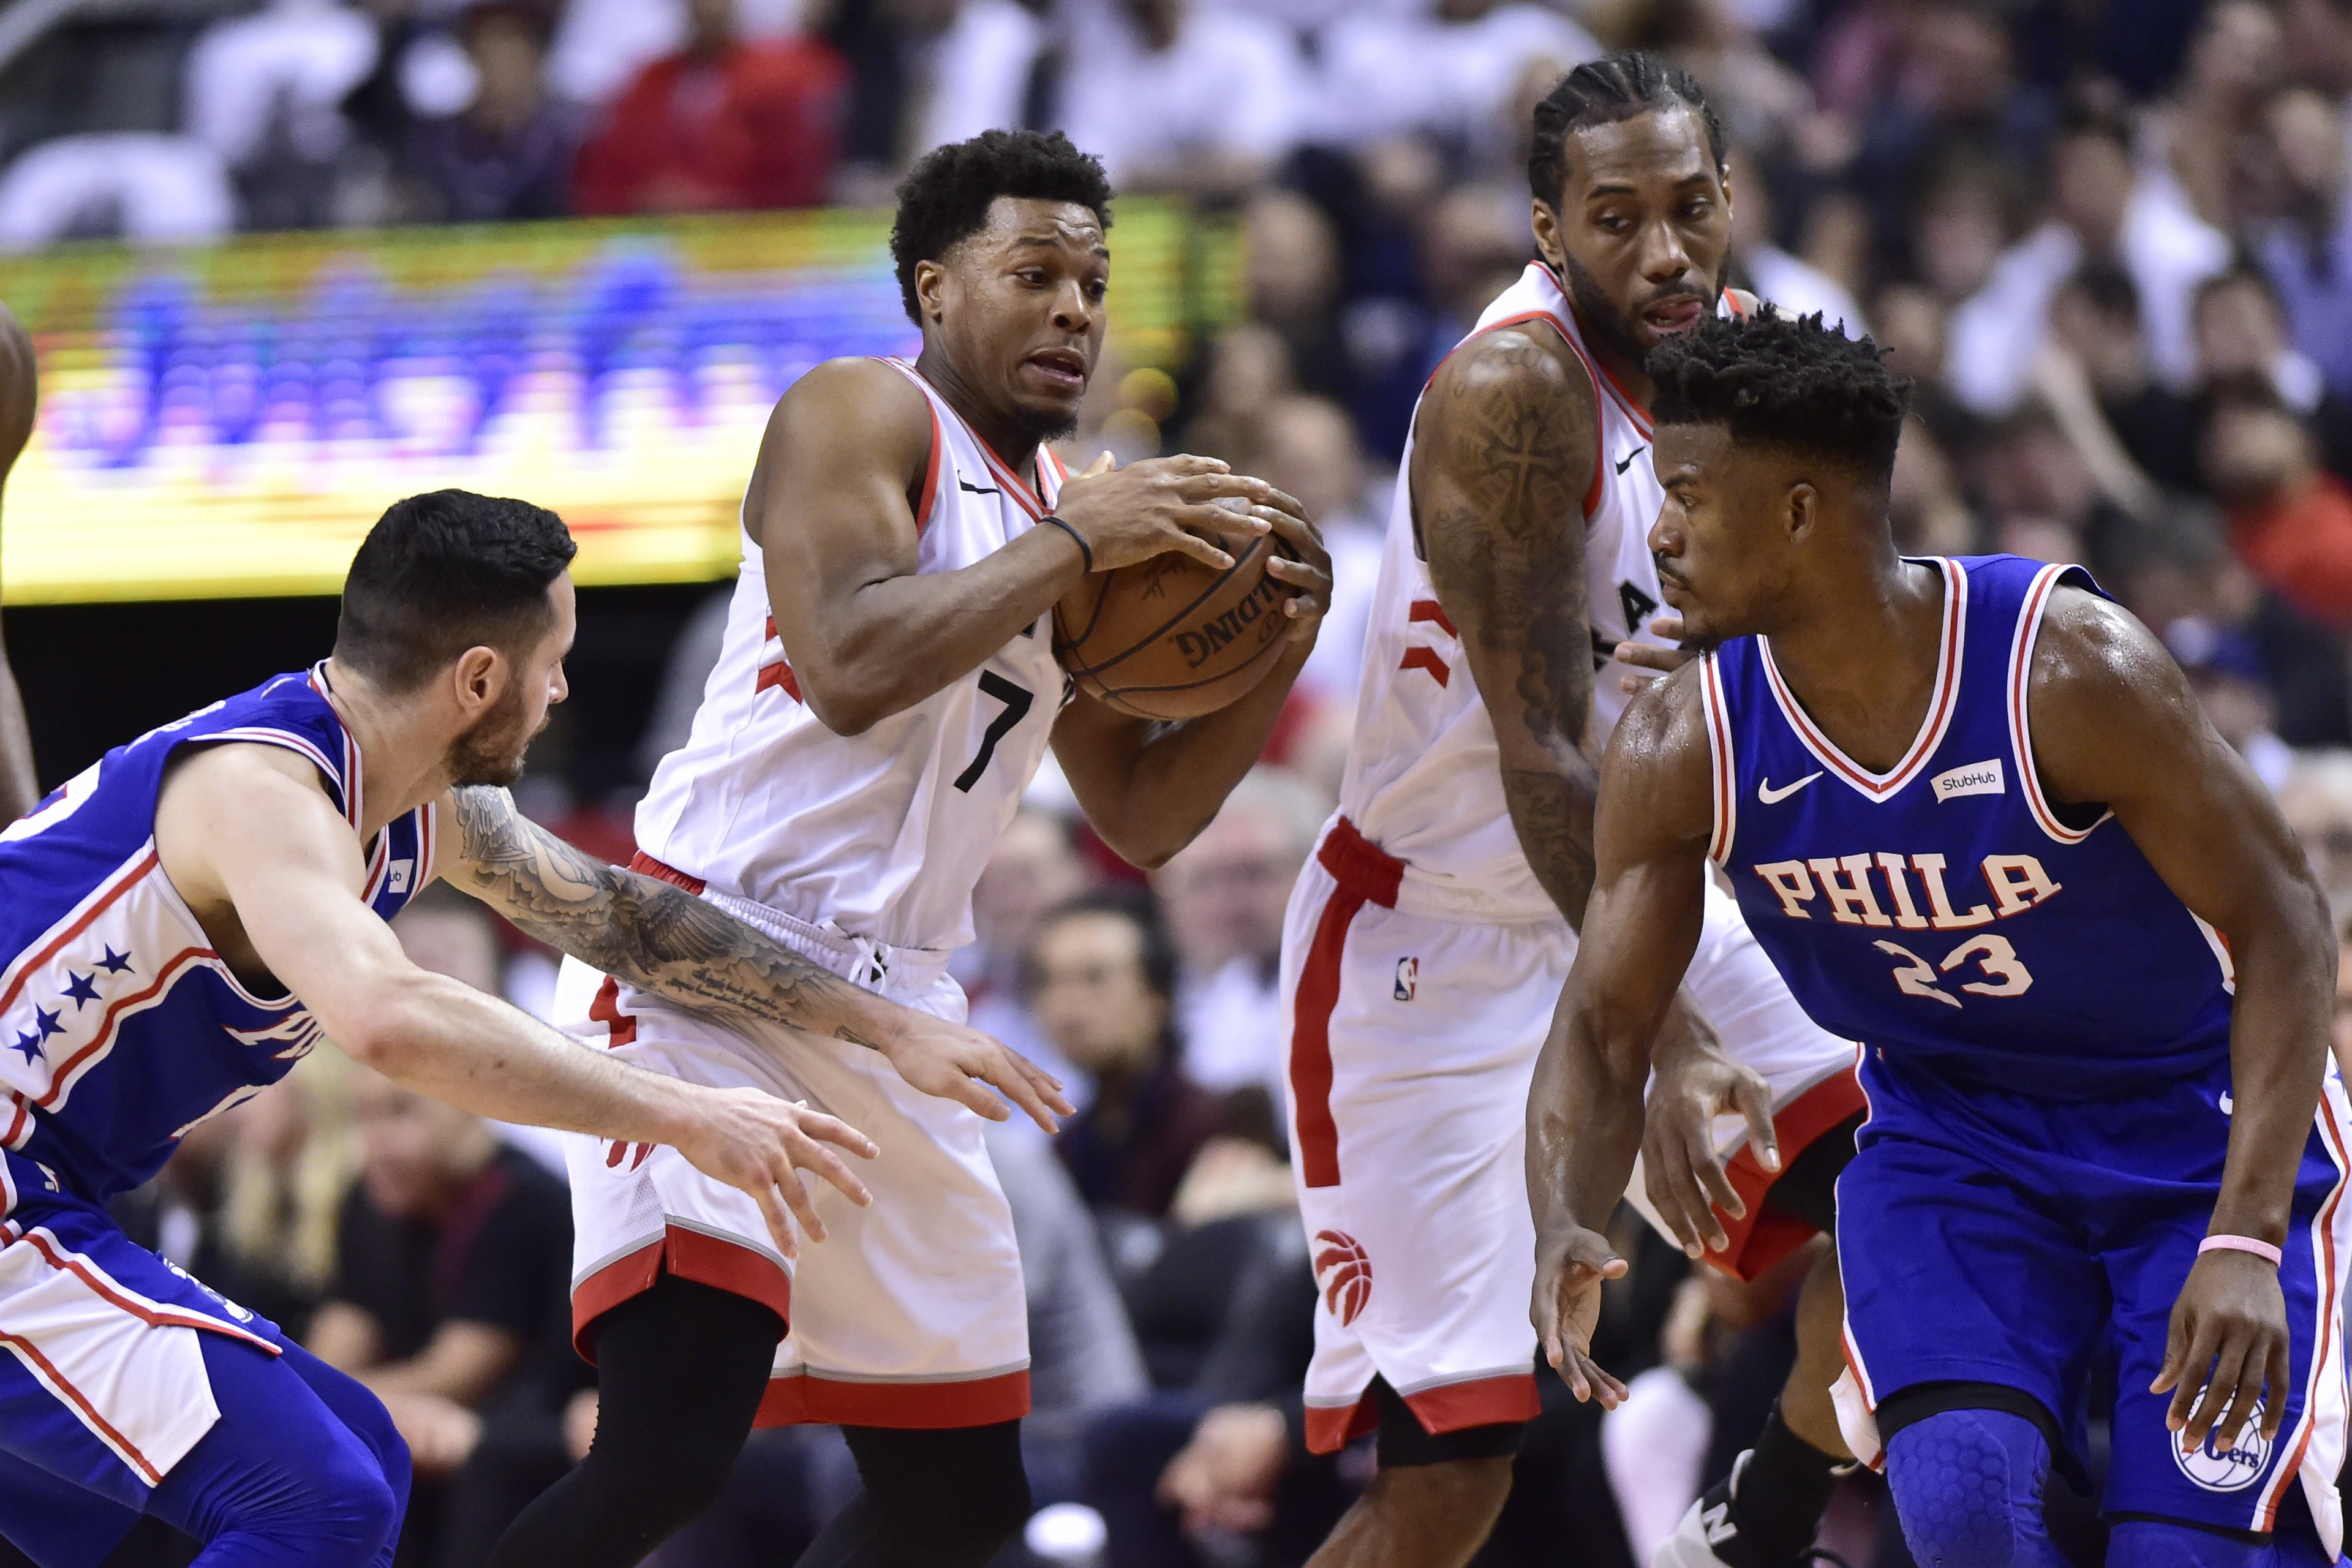 841e908c2 Team effort leads Raptors to 125-89 rout of Philly